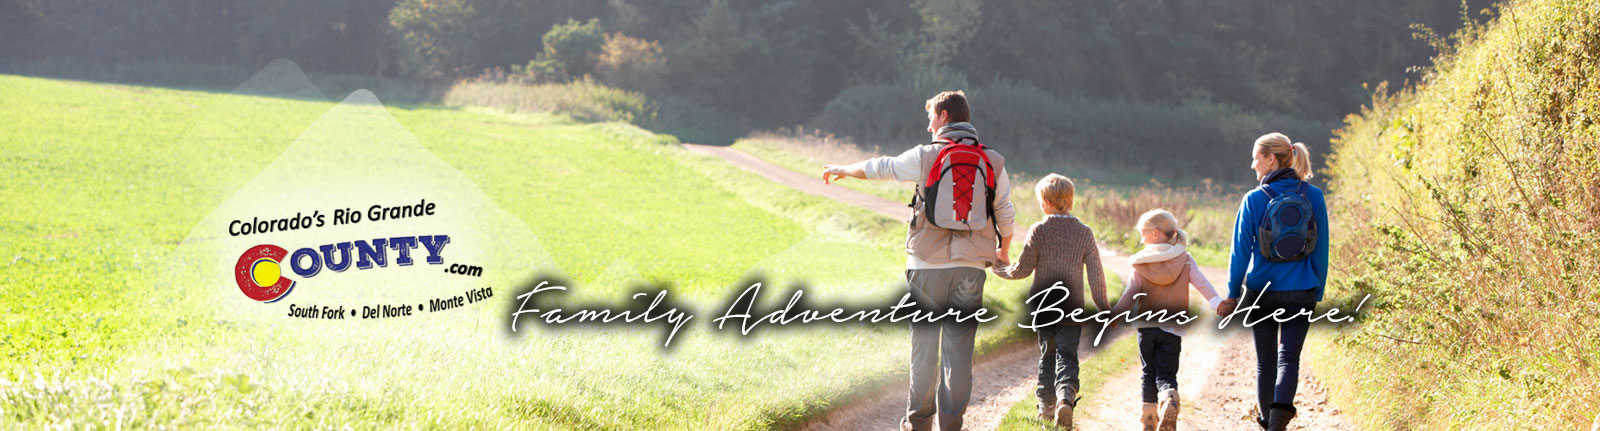 Rio Grande Country Family Adventures Begin Here South Fork CO